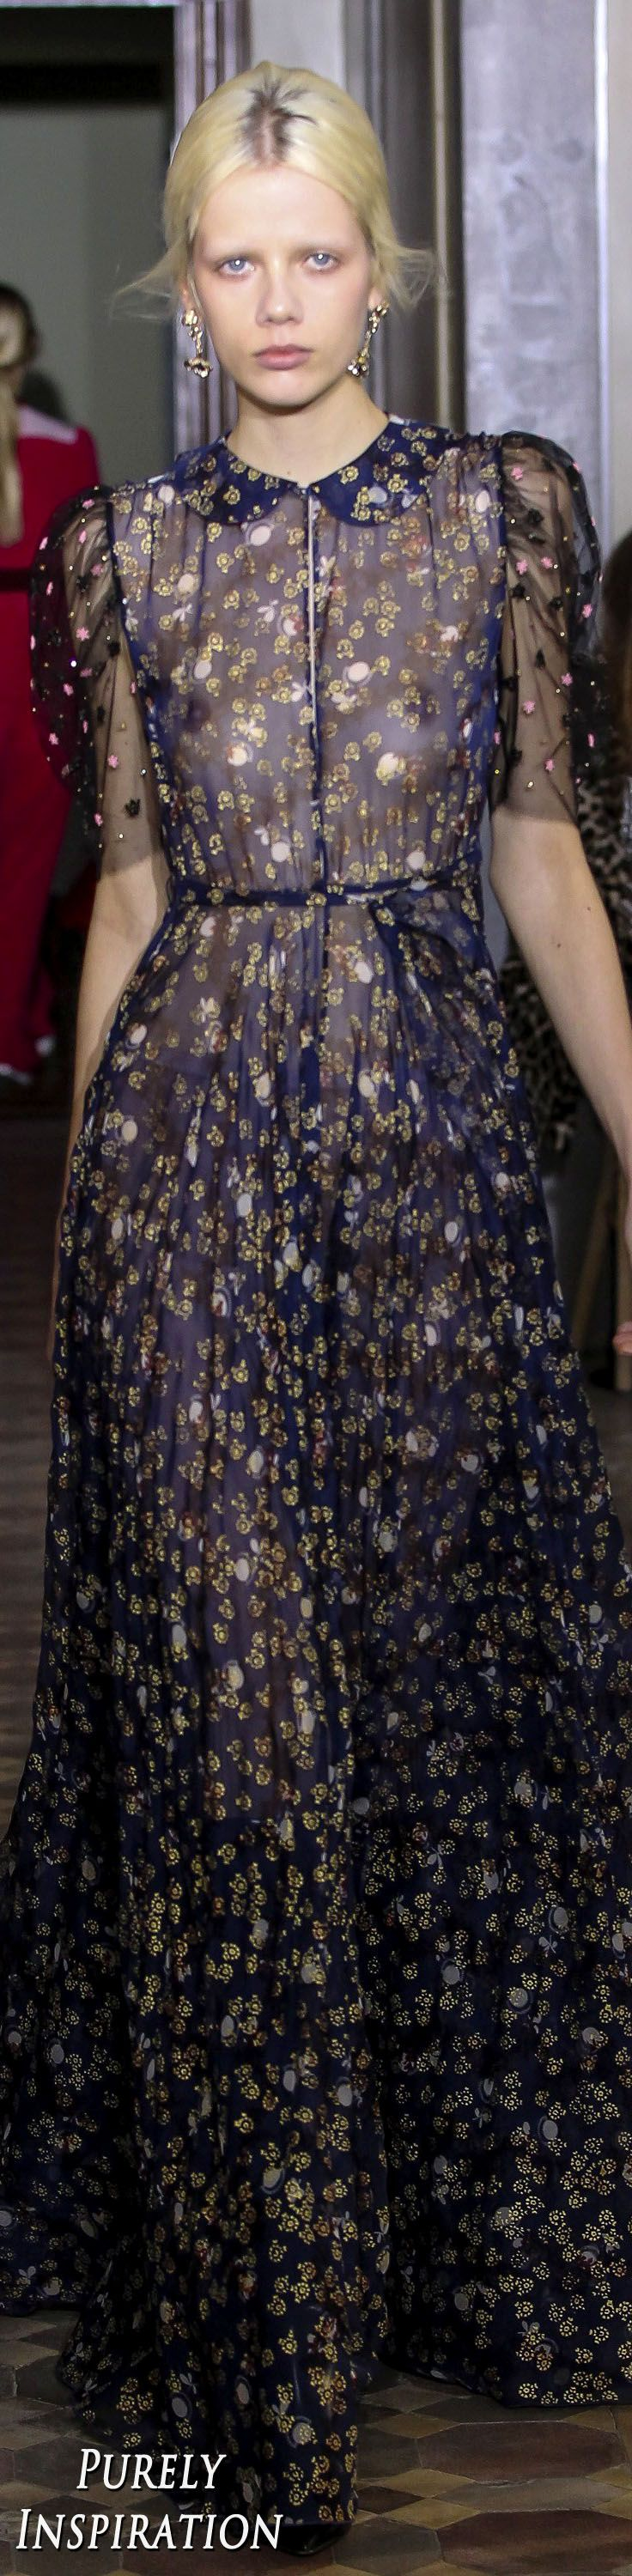 Valentino Pre-Fall 2017 Women's Fashion RTW | Purely Inspiration